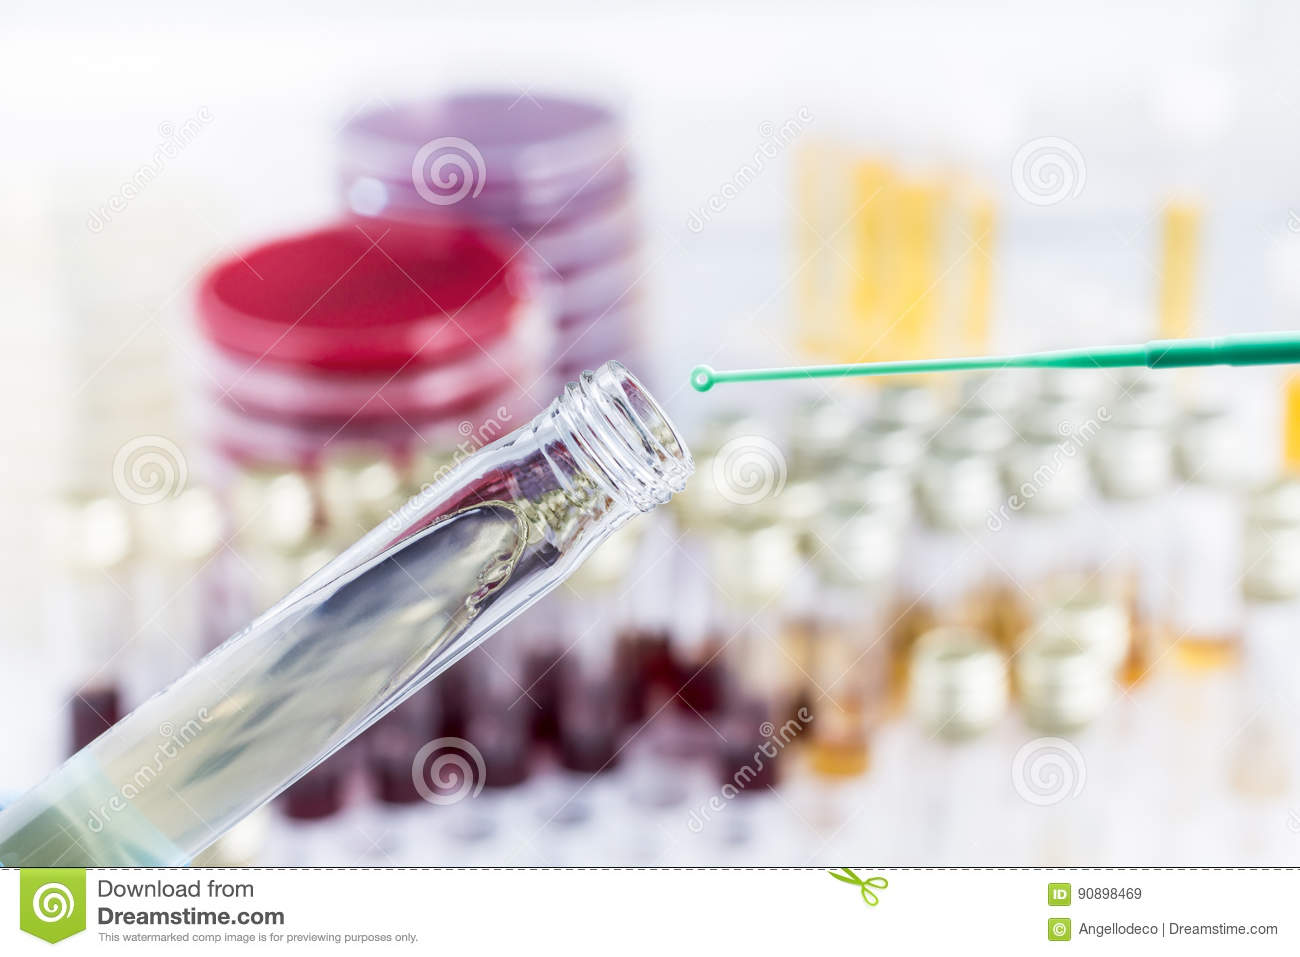 Inoculation Of Sample In Culture Medium In Tube Stock Image - Image ... for Inoculation Microbiology  579cpg